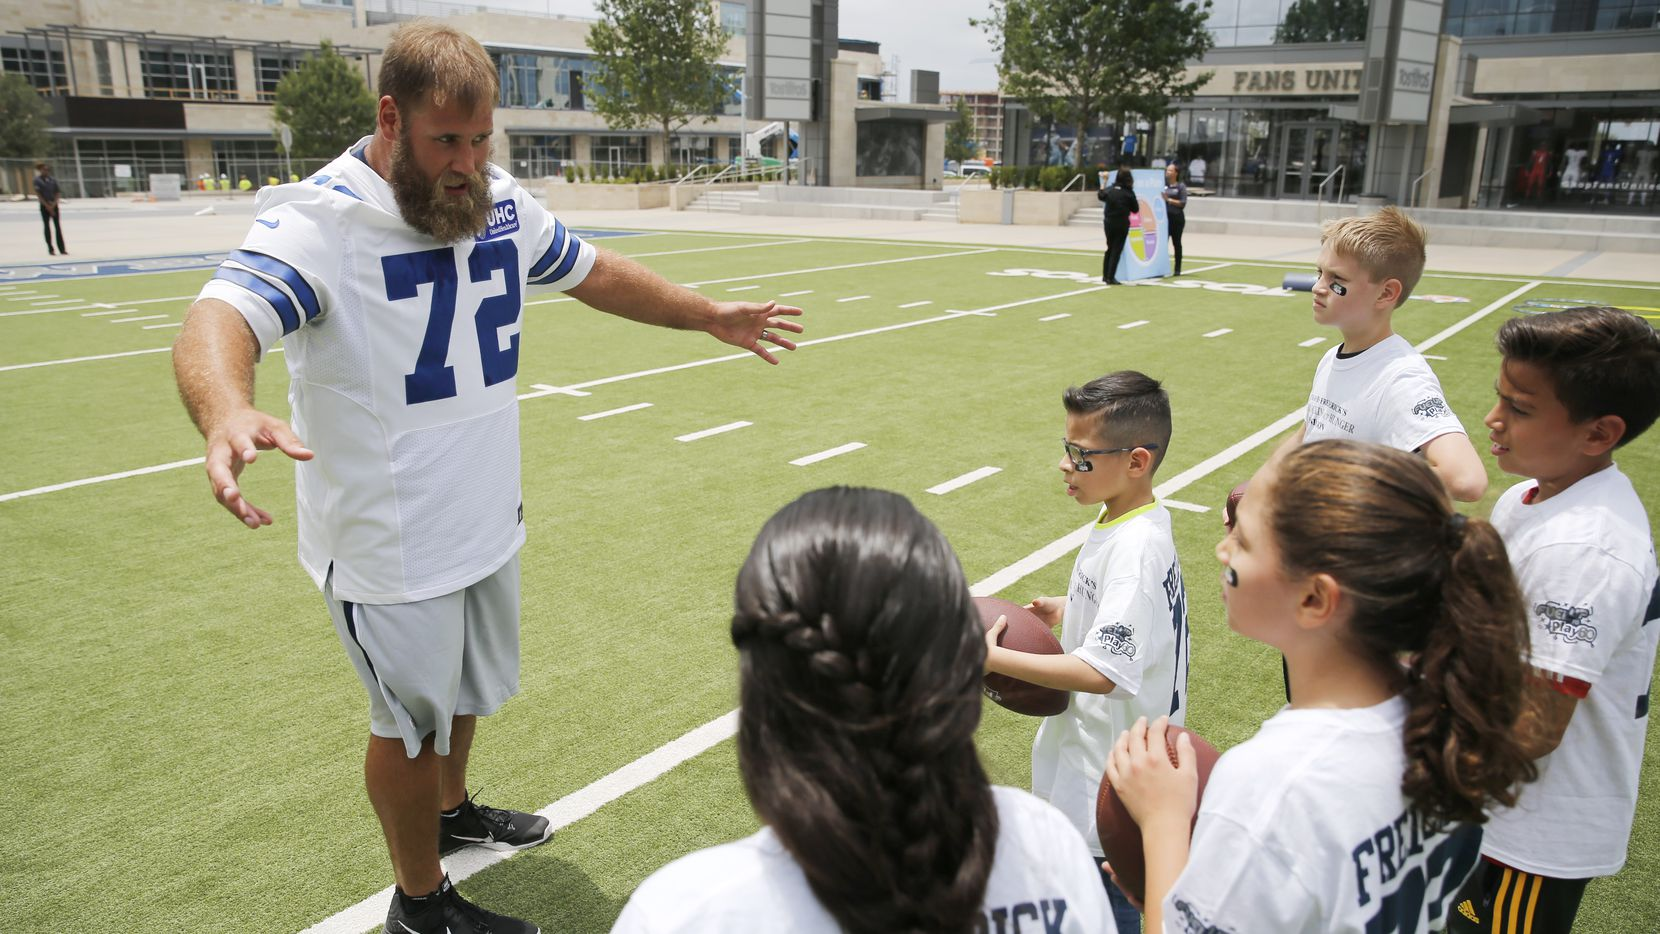 Dallas Cowboys center Travis Frederick (72) explains the next exercise to fourth graders from Christie elementary school during a Frisco ISD's Fuel Up to Play 60 program in front of the Ford Center at The Star in Frisco on Tuesday, May 16, 2017.